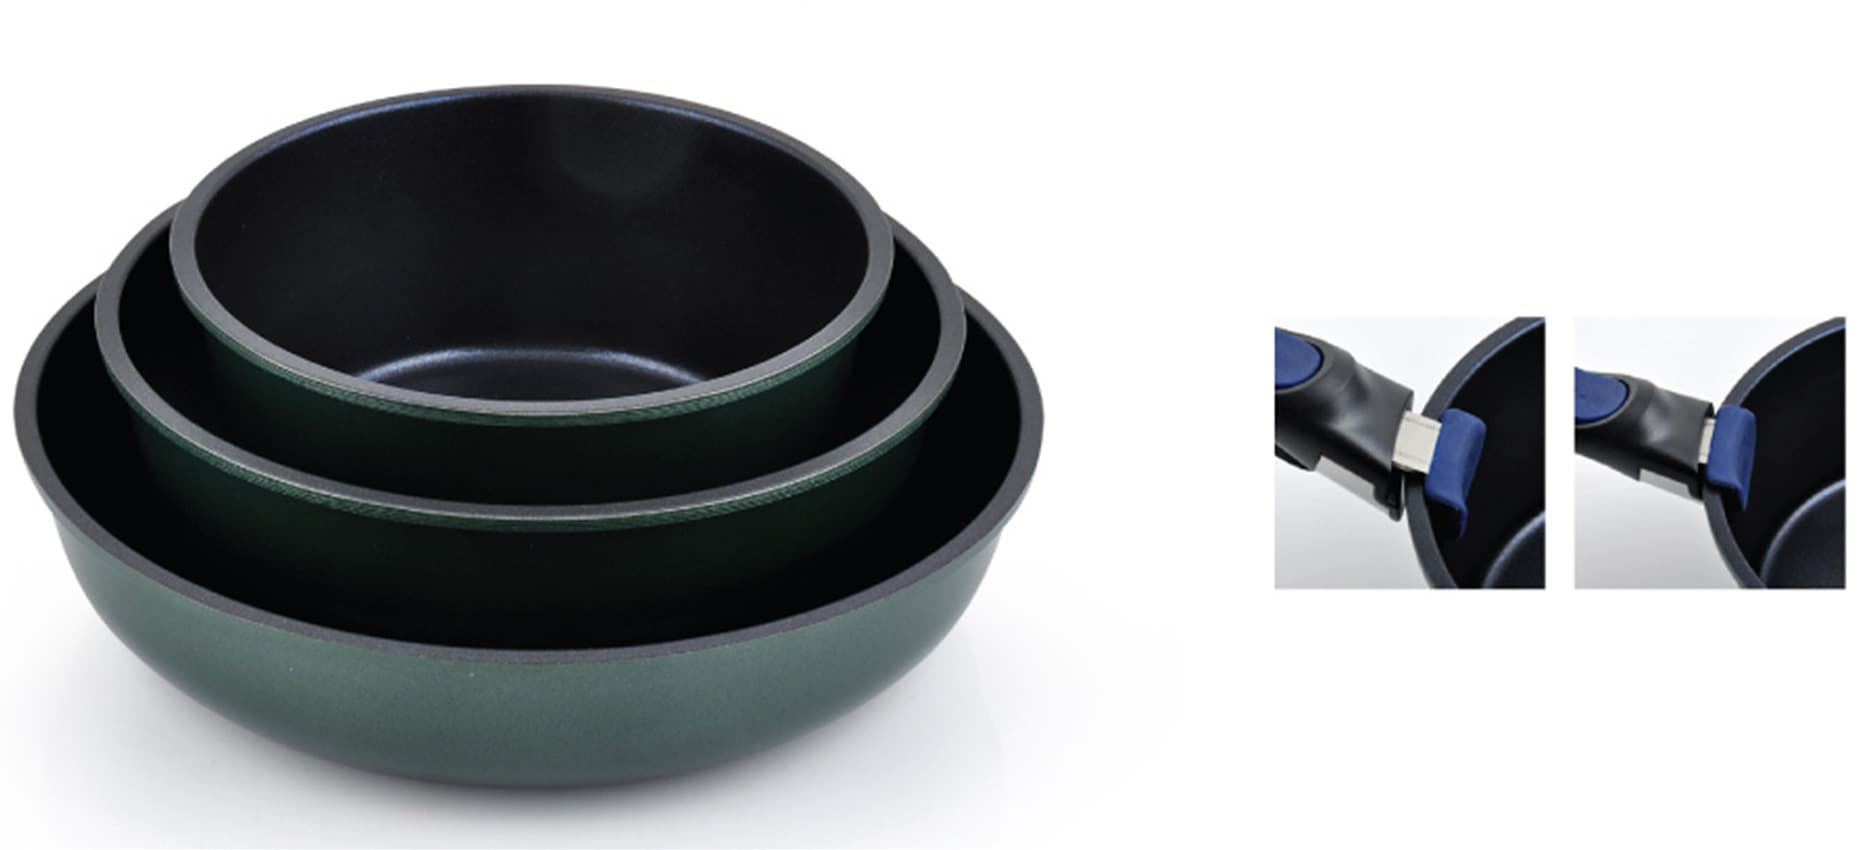 DONABE ceramic coating 2 handled Wok series